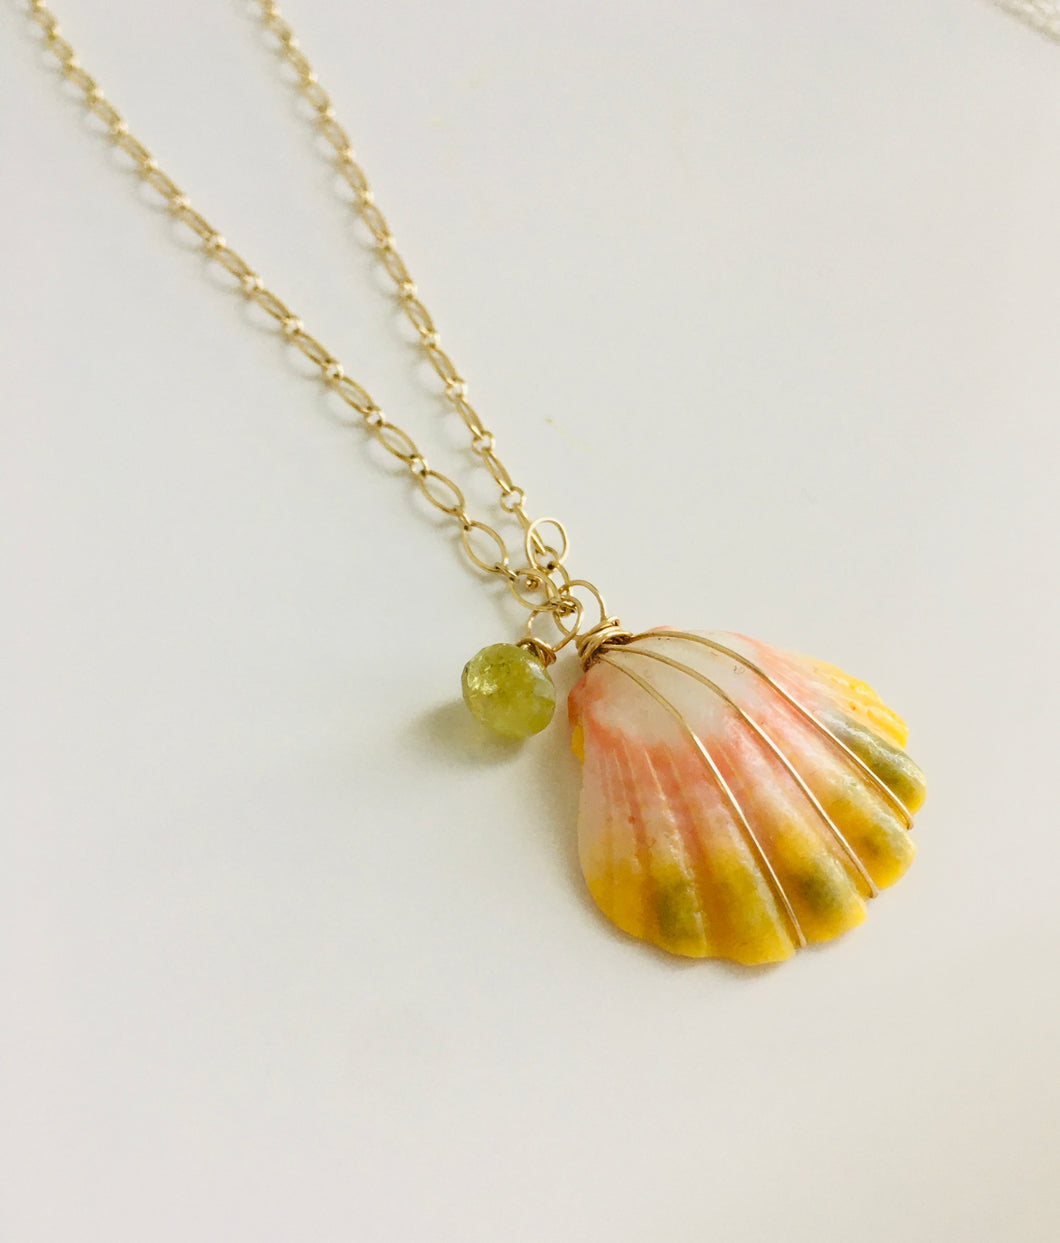 Sunrise Shell Necklace with Green Garnet 2.4 mm Oval Chain